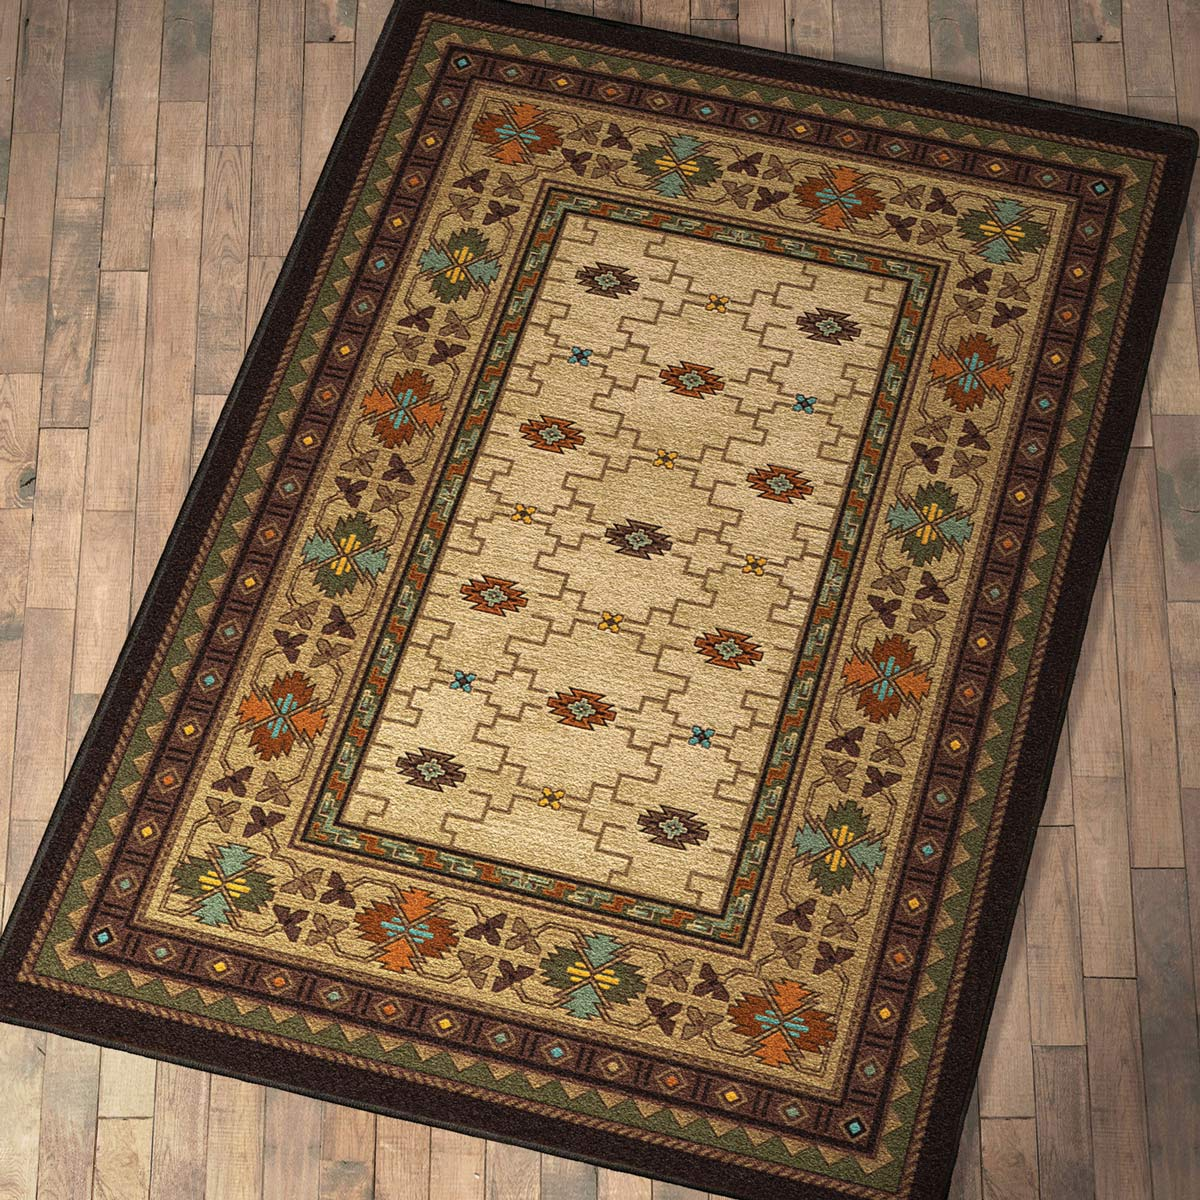 Rustic Traditions Rug - 3 x 4